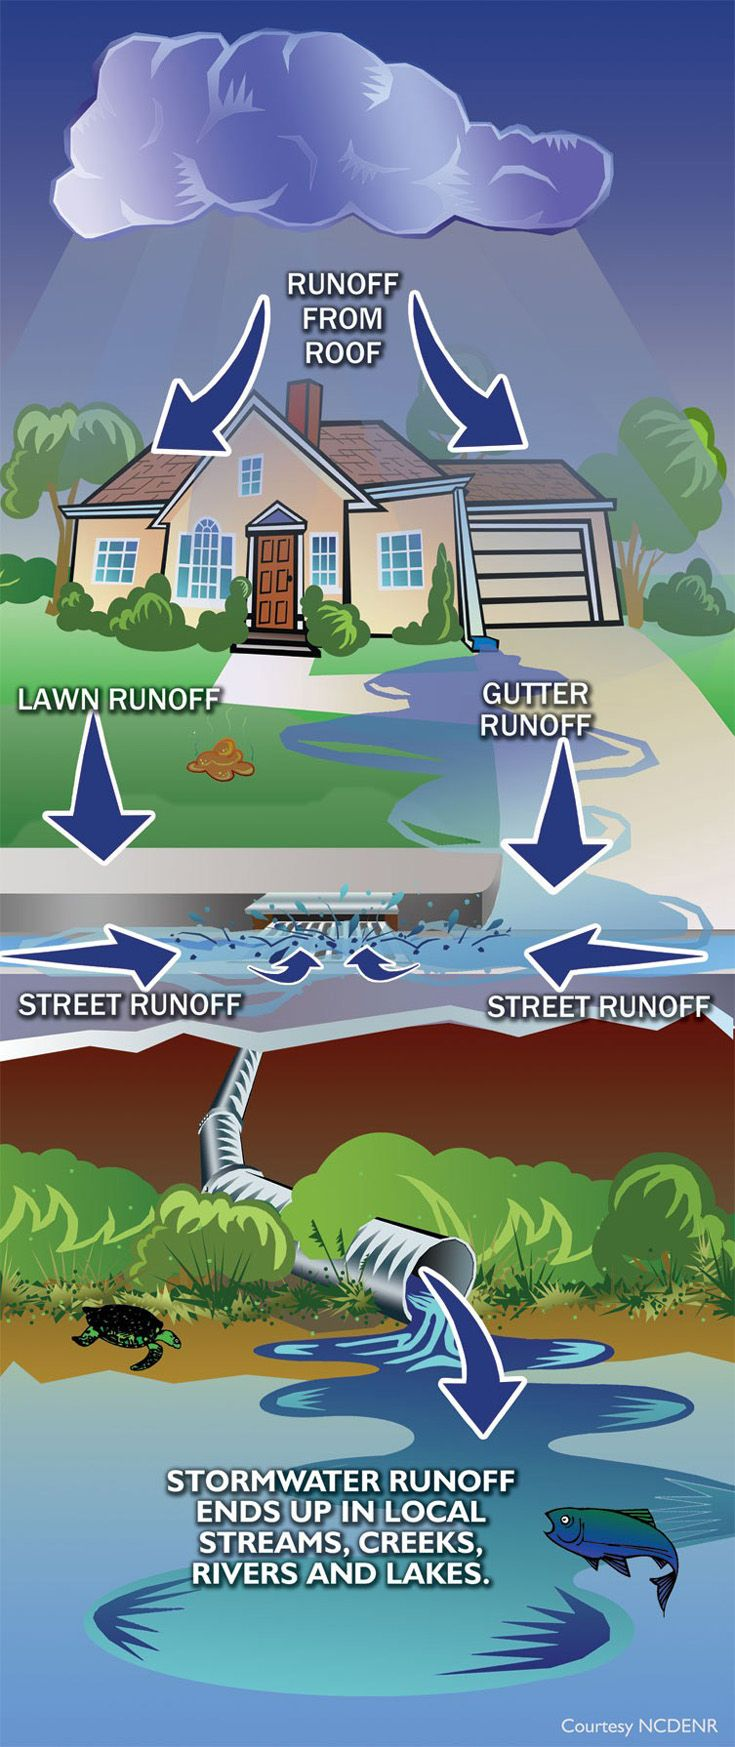 Runoff Calculator Home Pollution Activities Pollution Prevention Stormwater